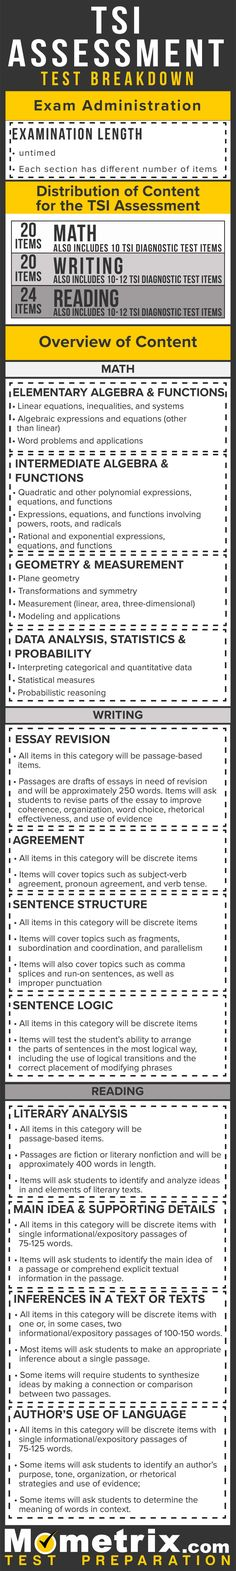 Statistical help for dissertation papers students